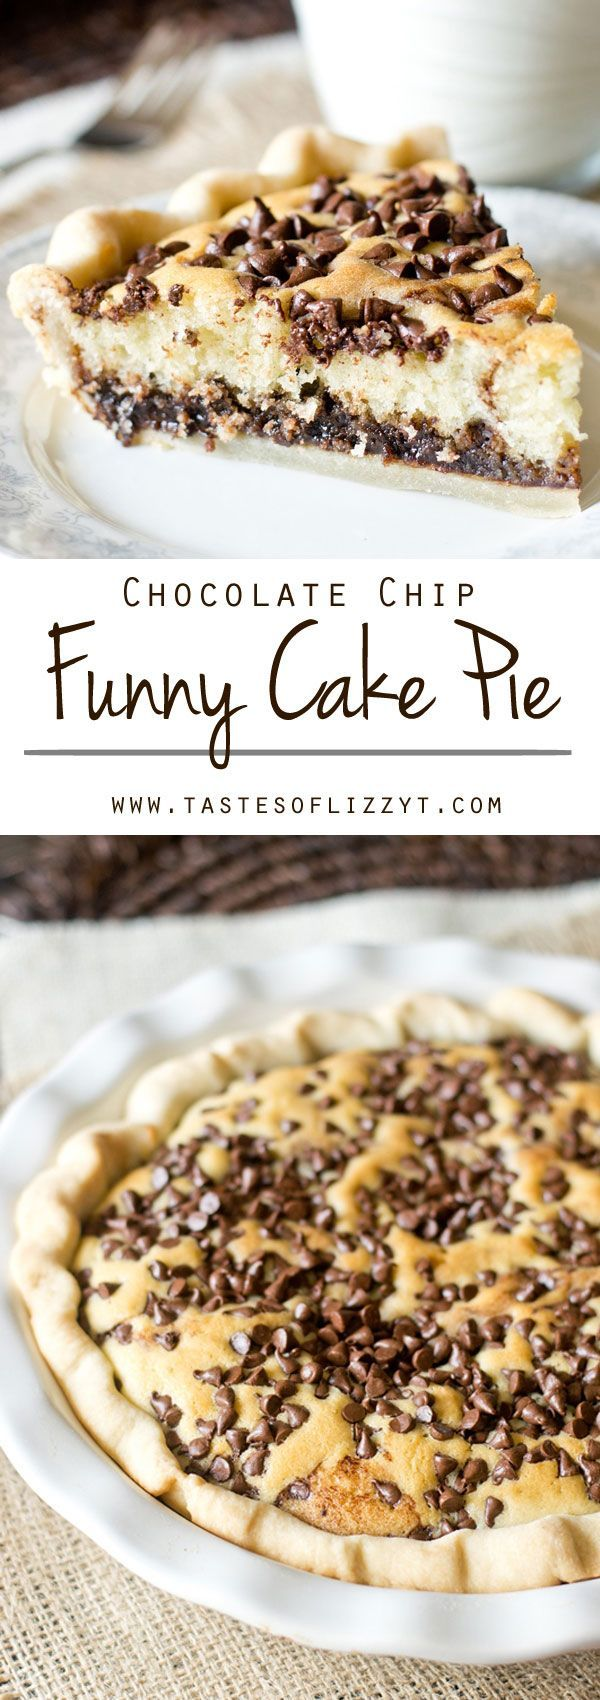 Chocolate Chip Funny Cake Pie on http://MyRecipeMagic.com. Chocolate Chip Funny Cake Pie is an old recipe with timeless appeal. Chocolate fudge is topped with a soft, buttery cake and bakes inside a pie shell.